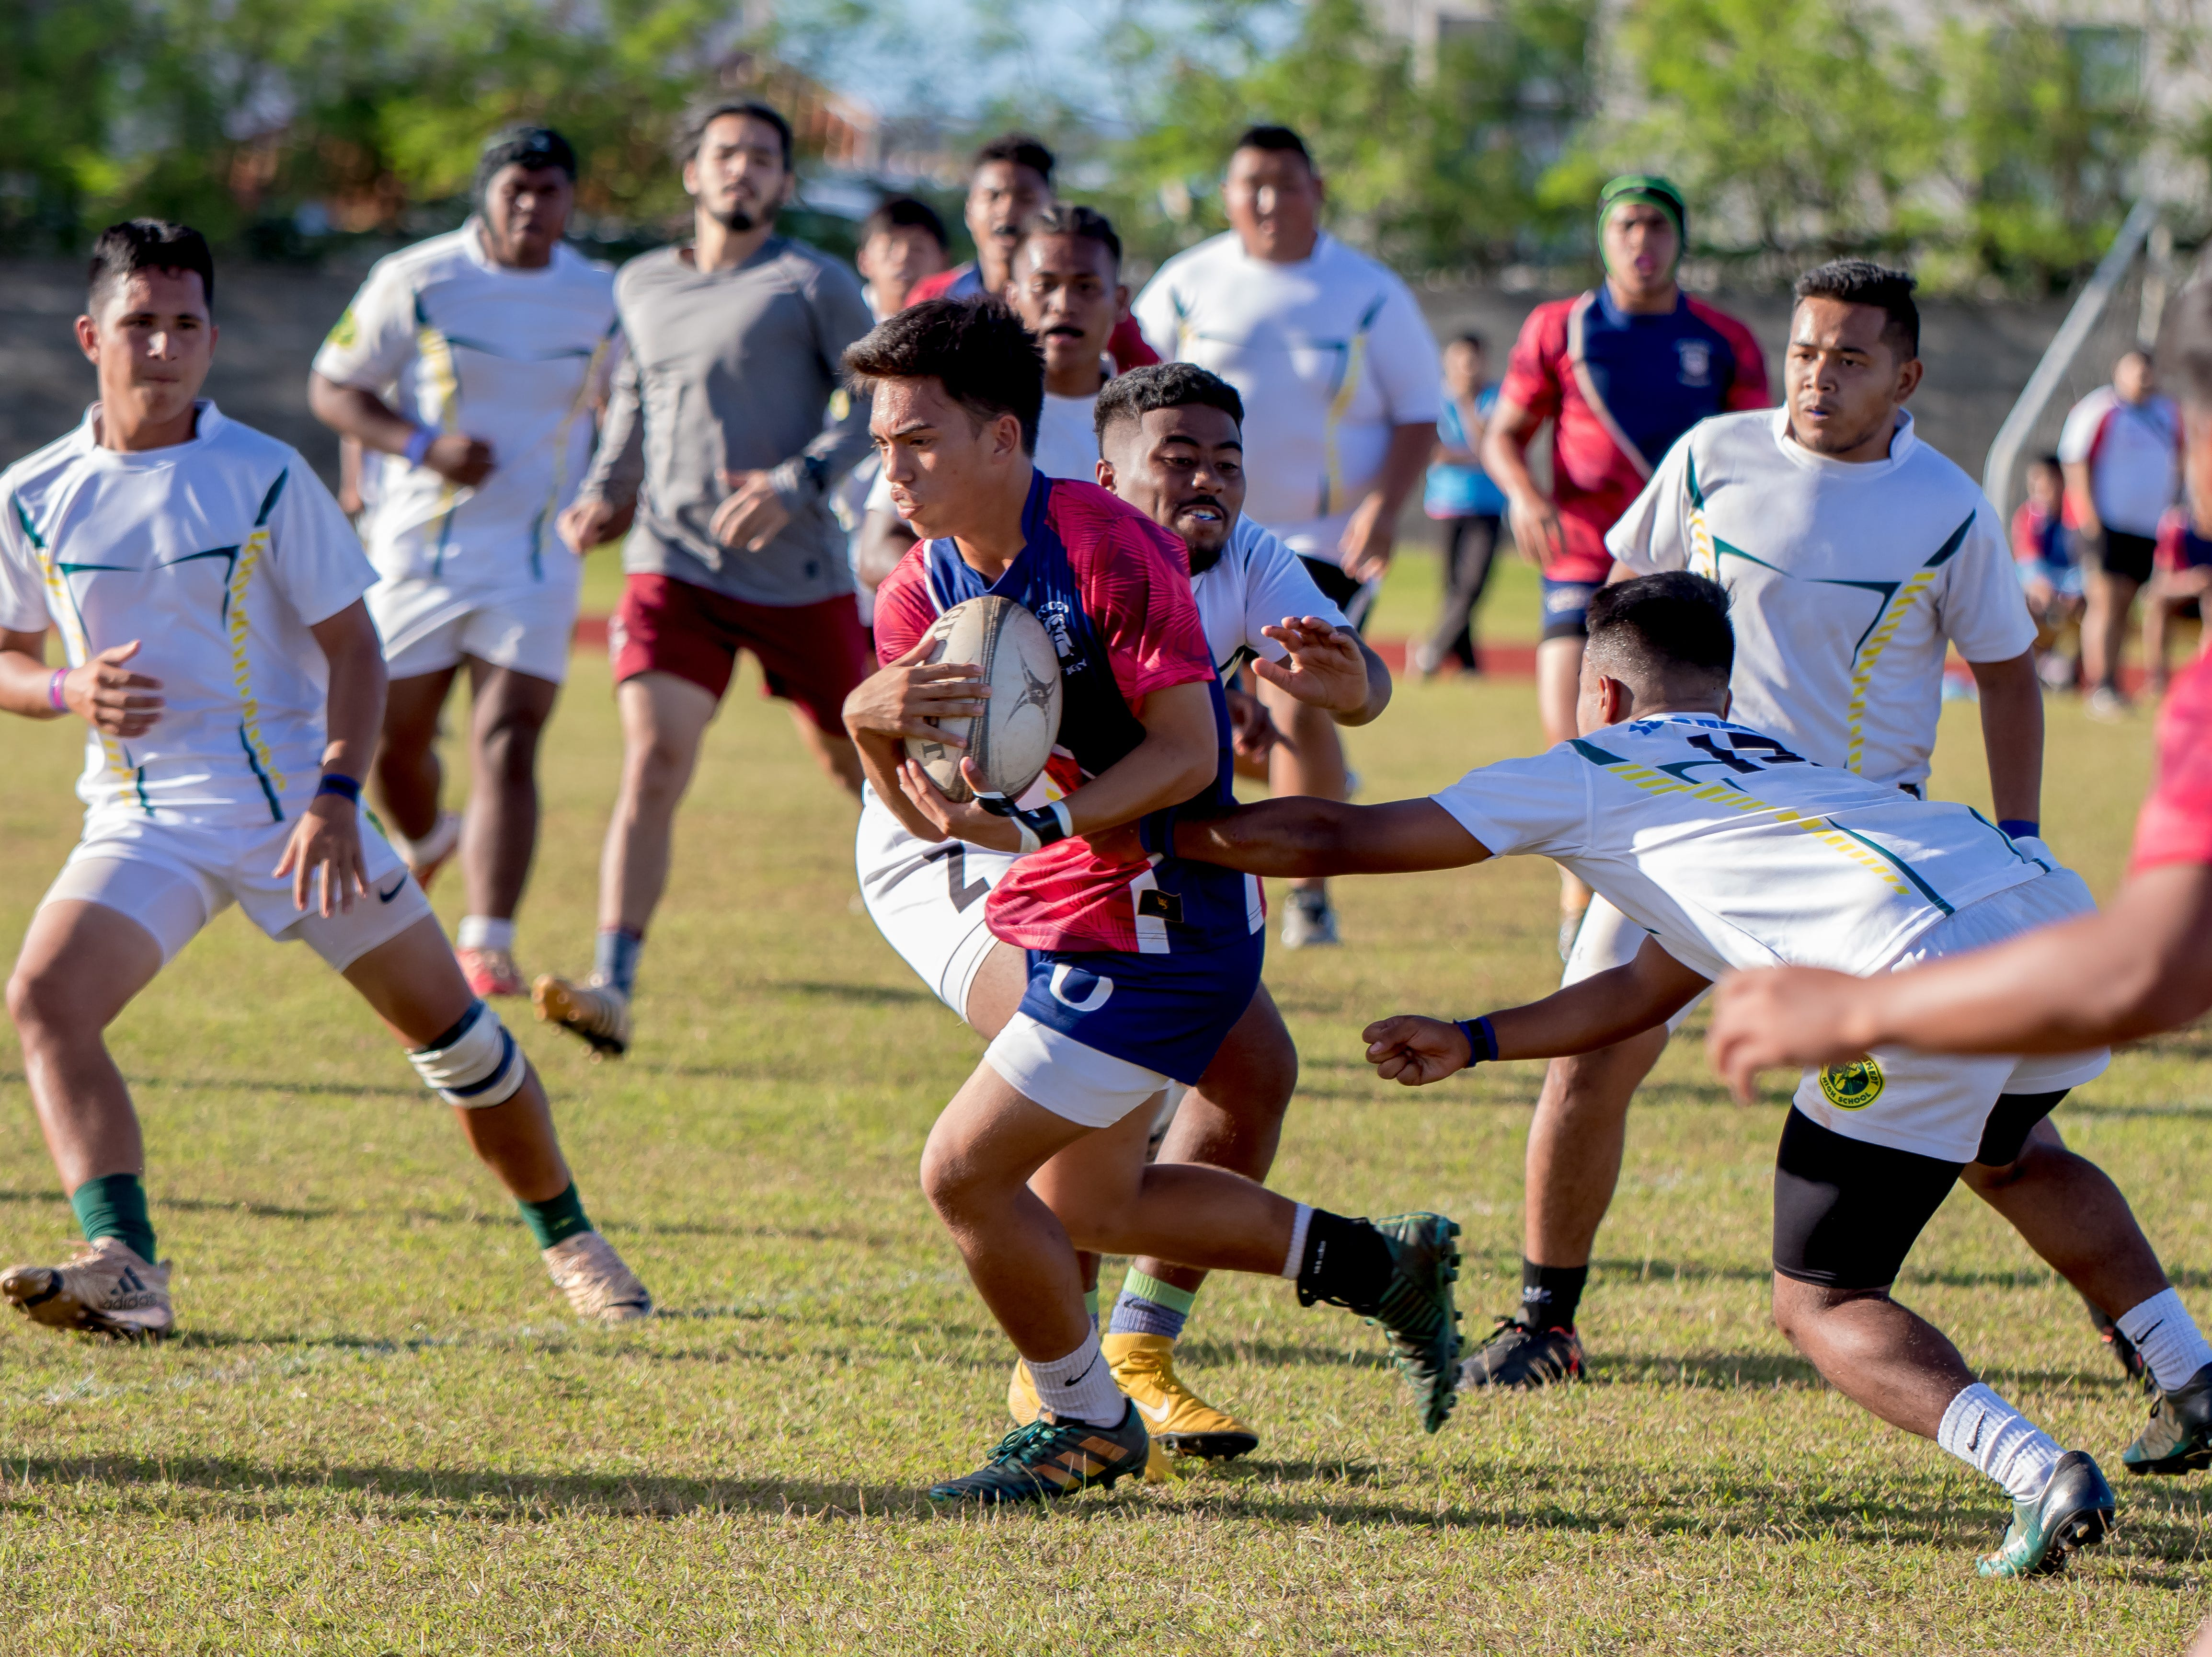 A Bulldog is surrounded by Islanders as he tries to evade the defenders during an IIAAG/GRFU Boys Rugby match at Ramsey Field on March 6.